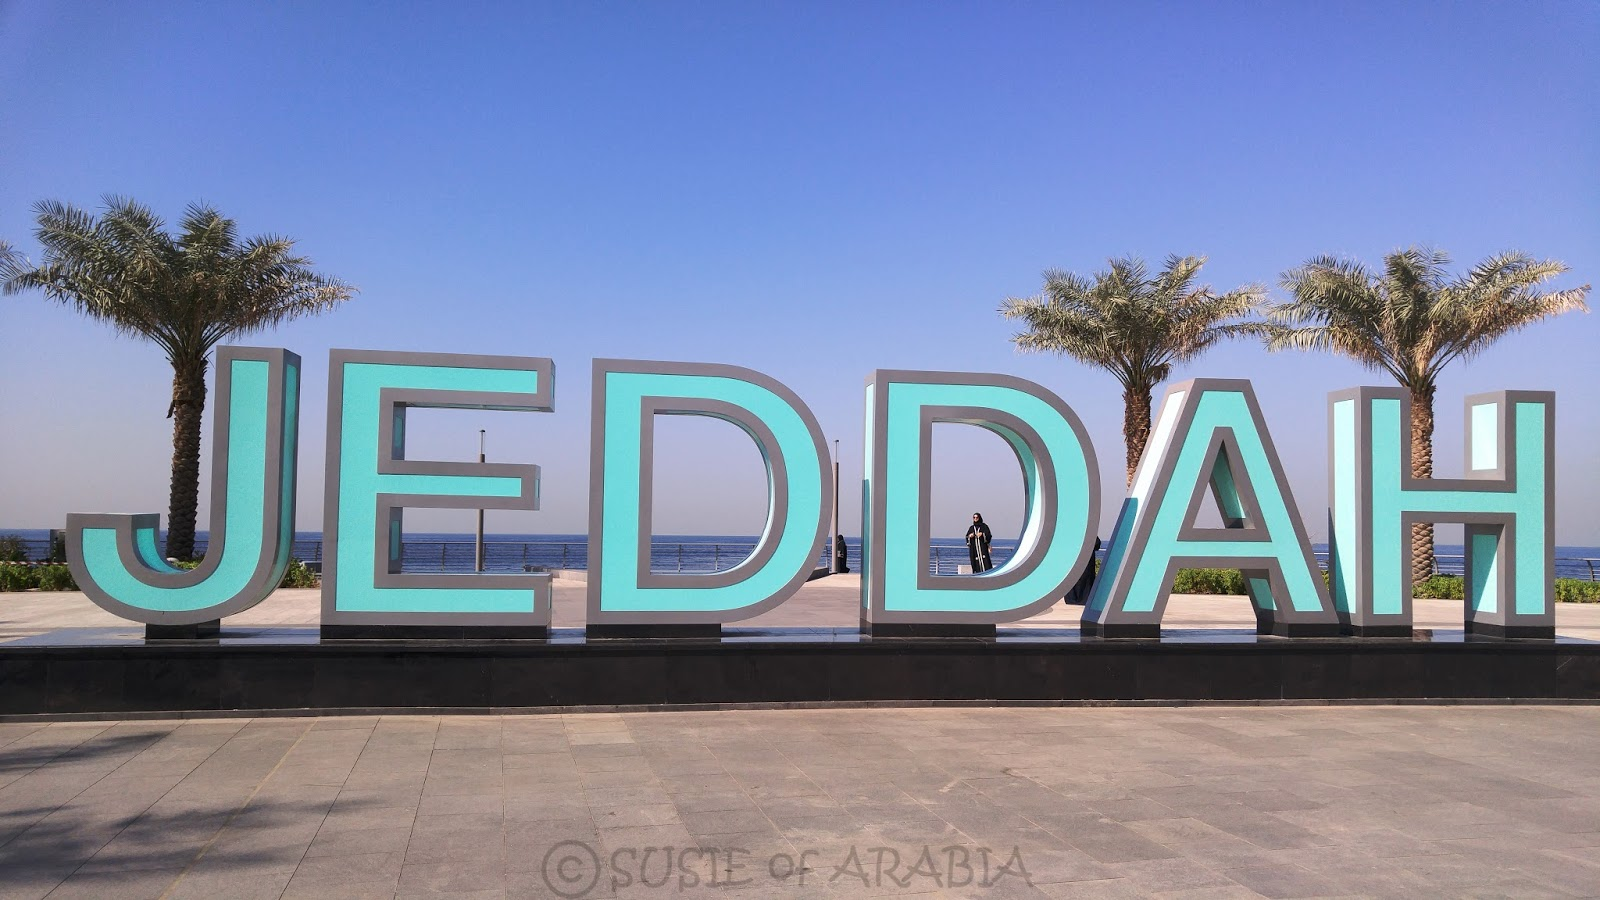 Susie Of Arabia The New Jeddah Waterfront Project